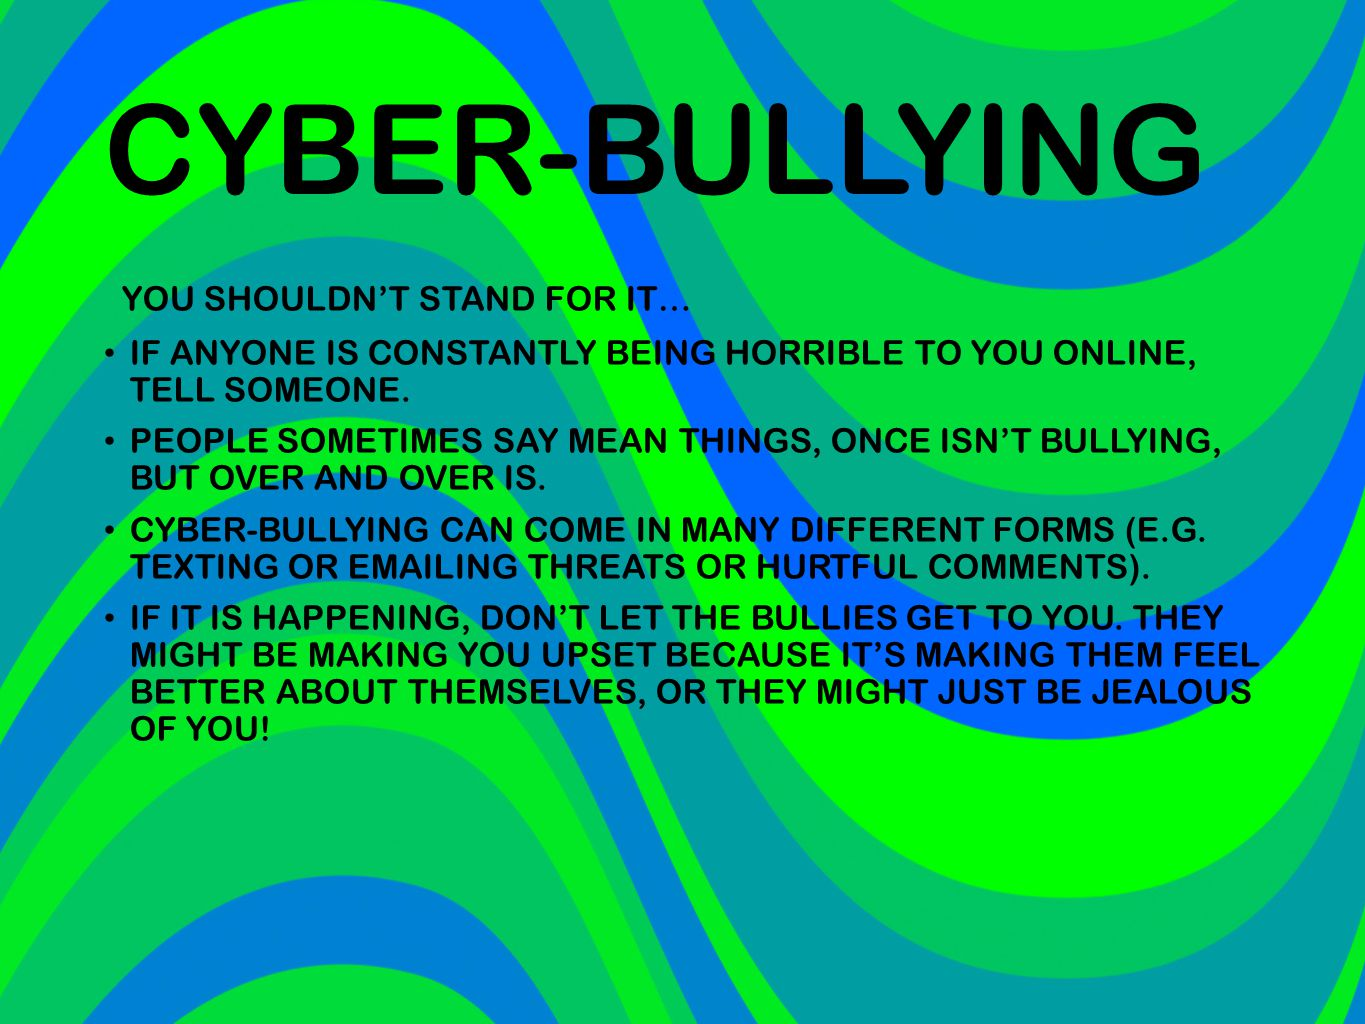 CYBER-BULLYING YOU SHOULDN'T STAND FOR IT…